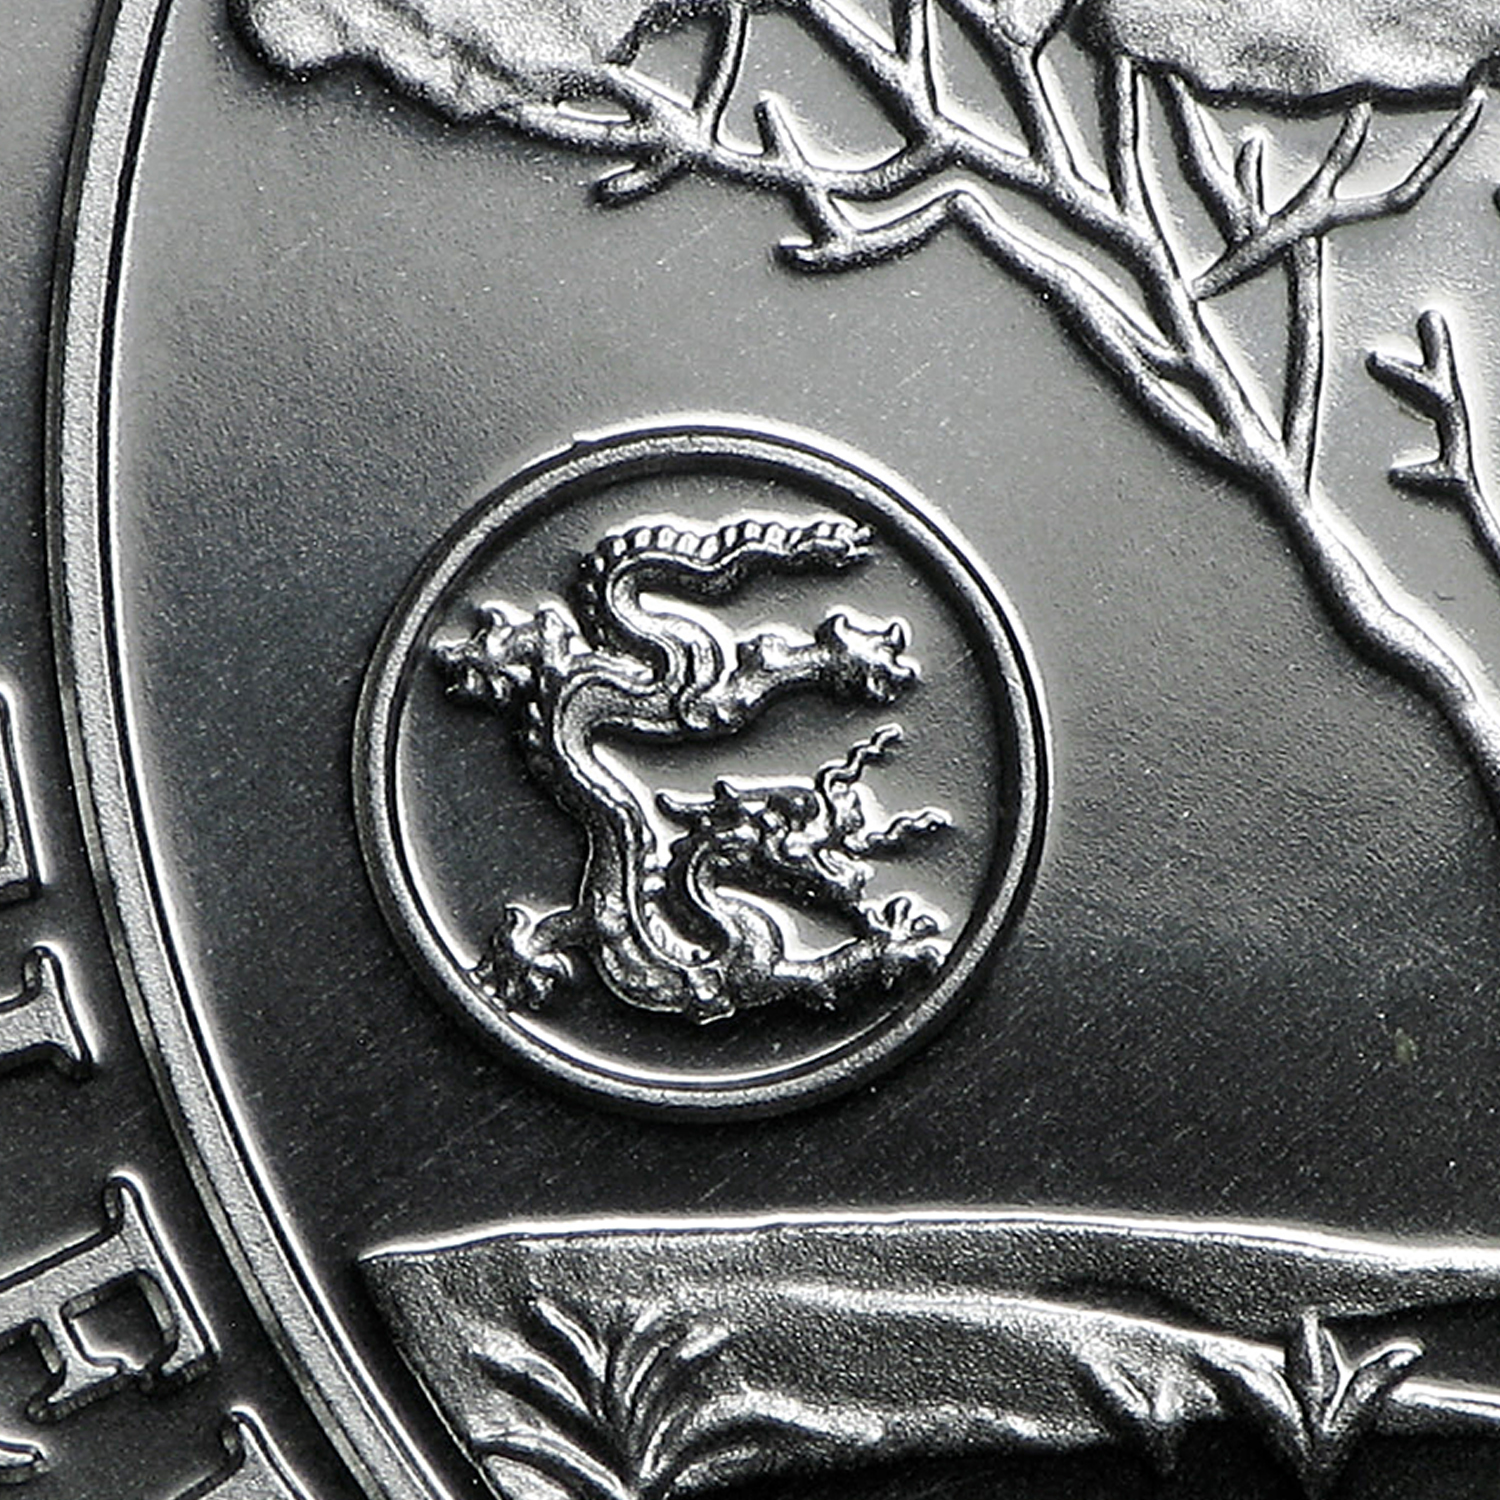 2012 1 oz Silver Somalian African Elephant (Dragon Privy)